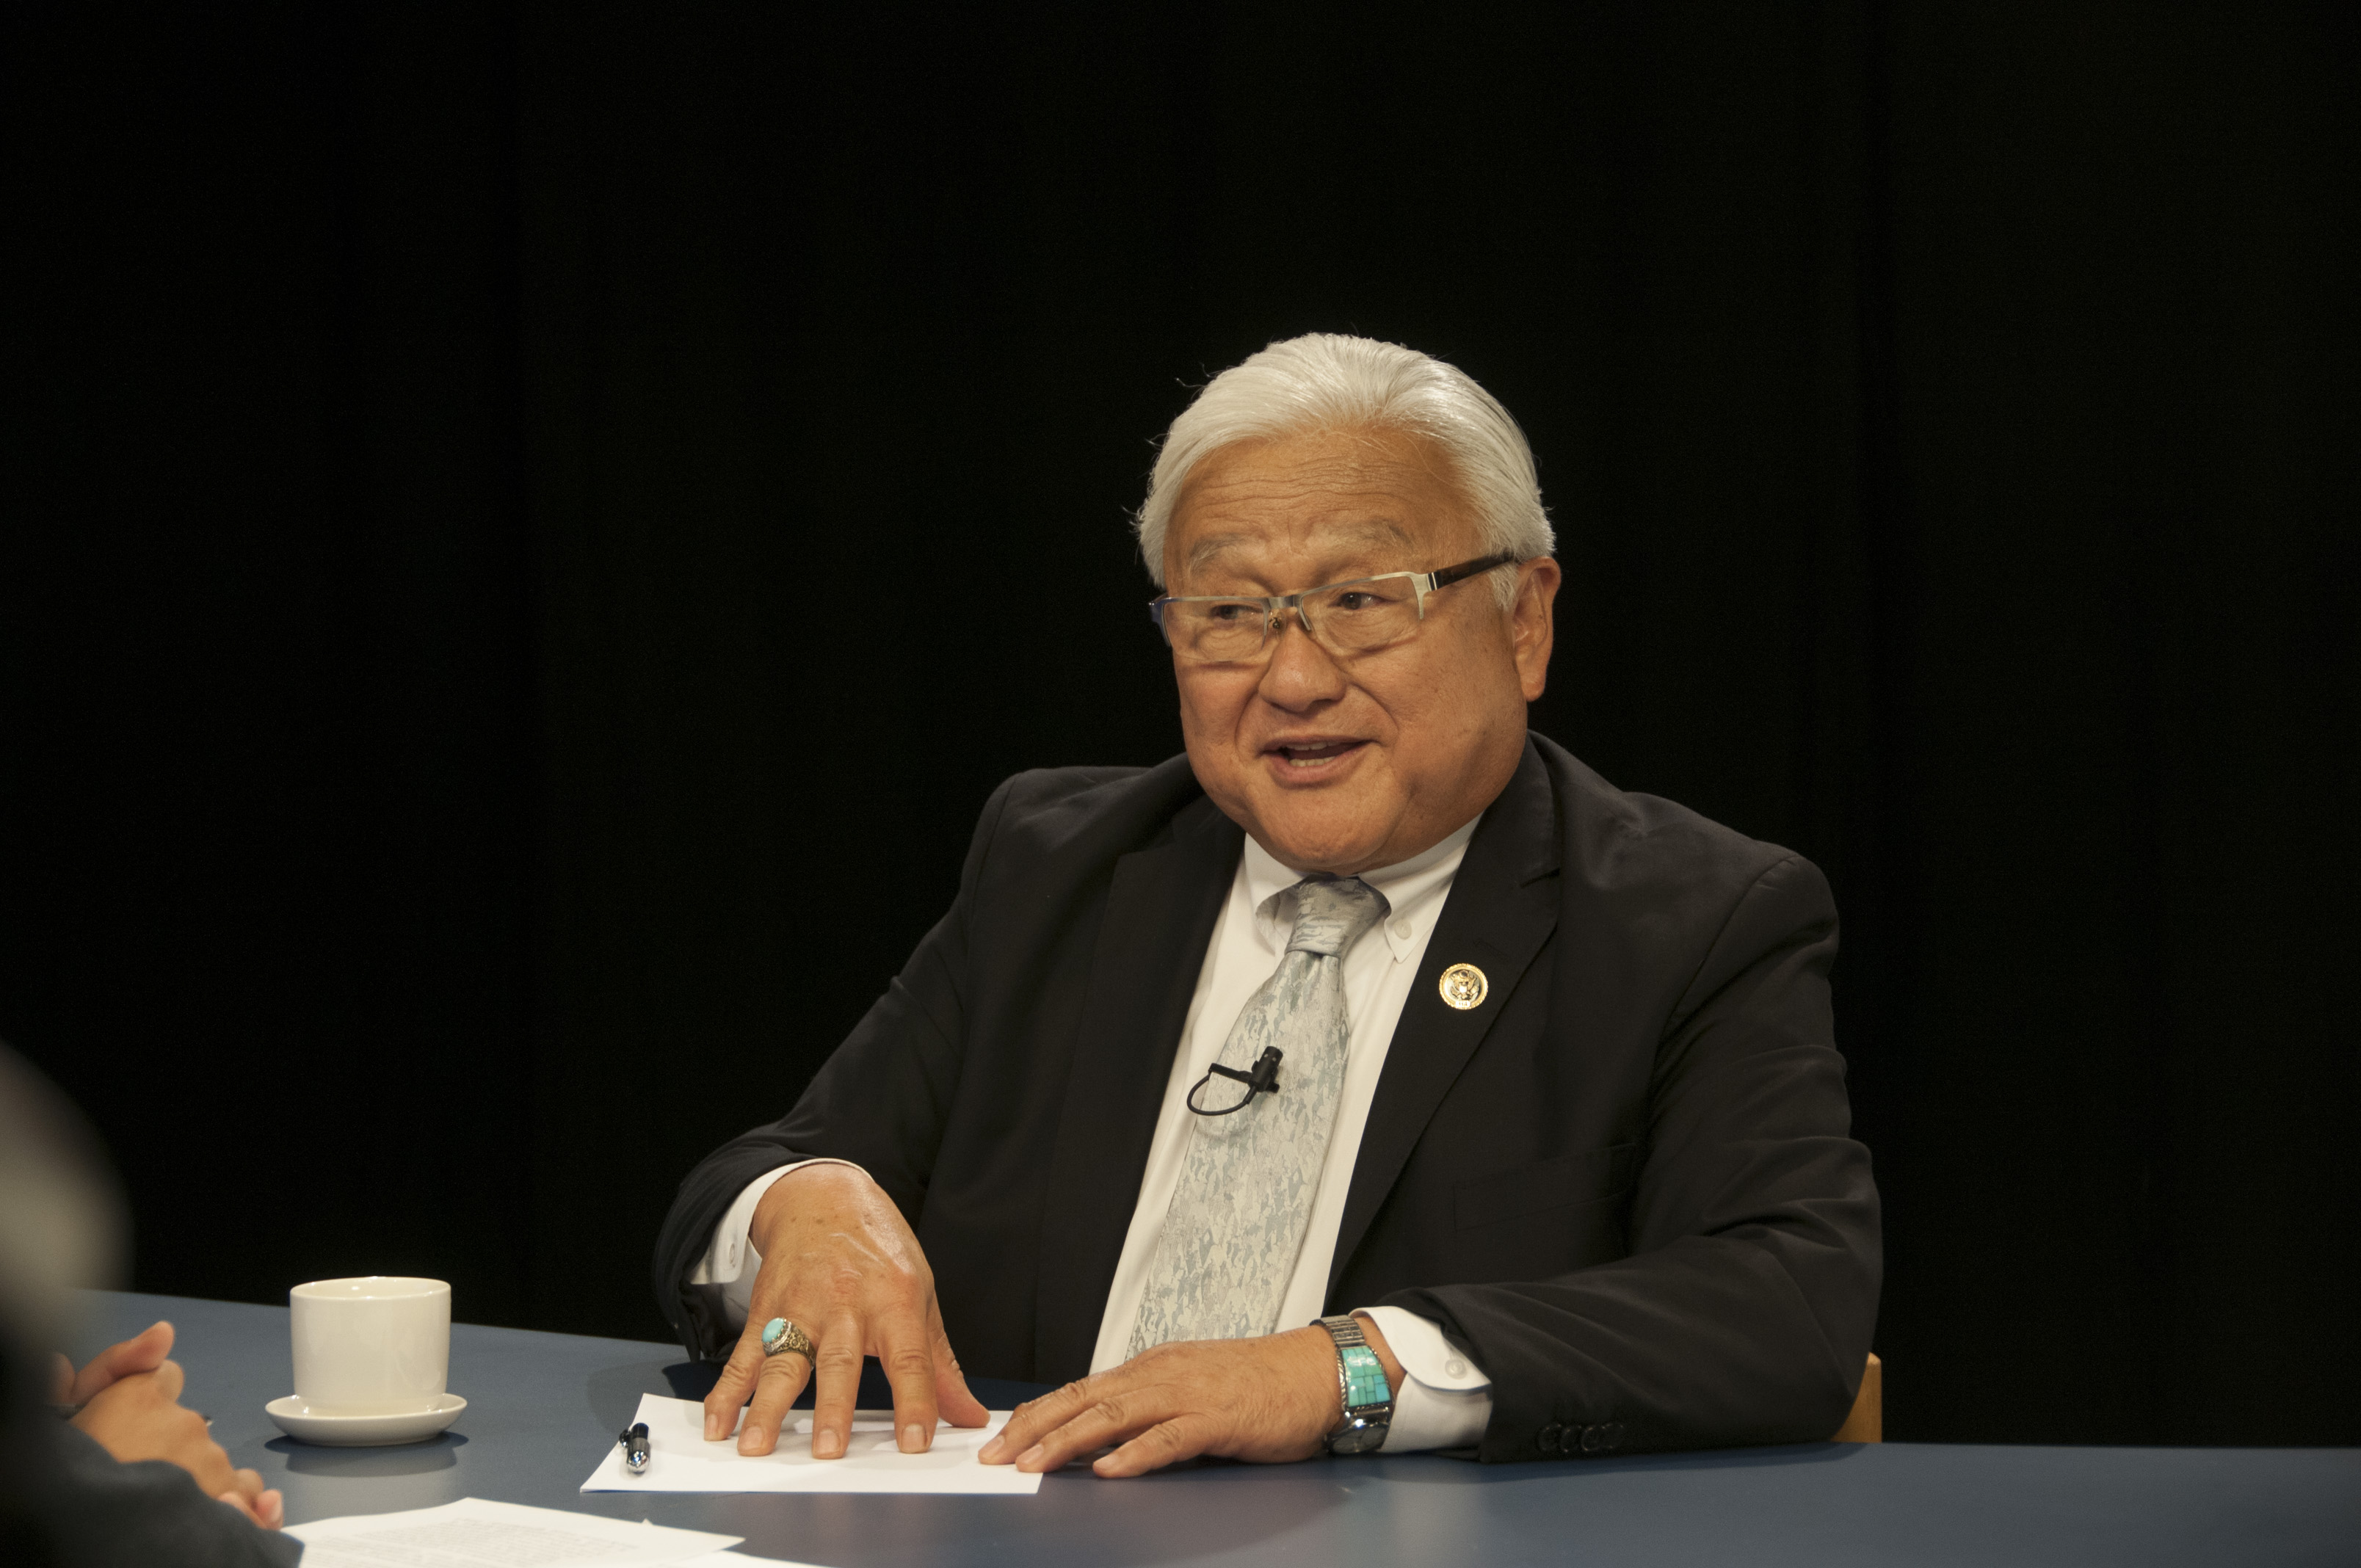 Congressman Mike Honda on What Matters to Him Most